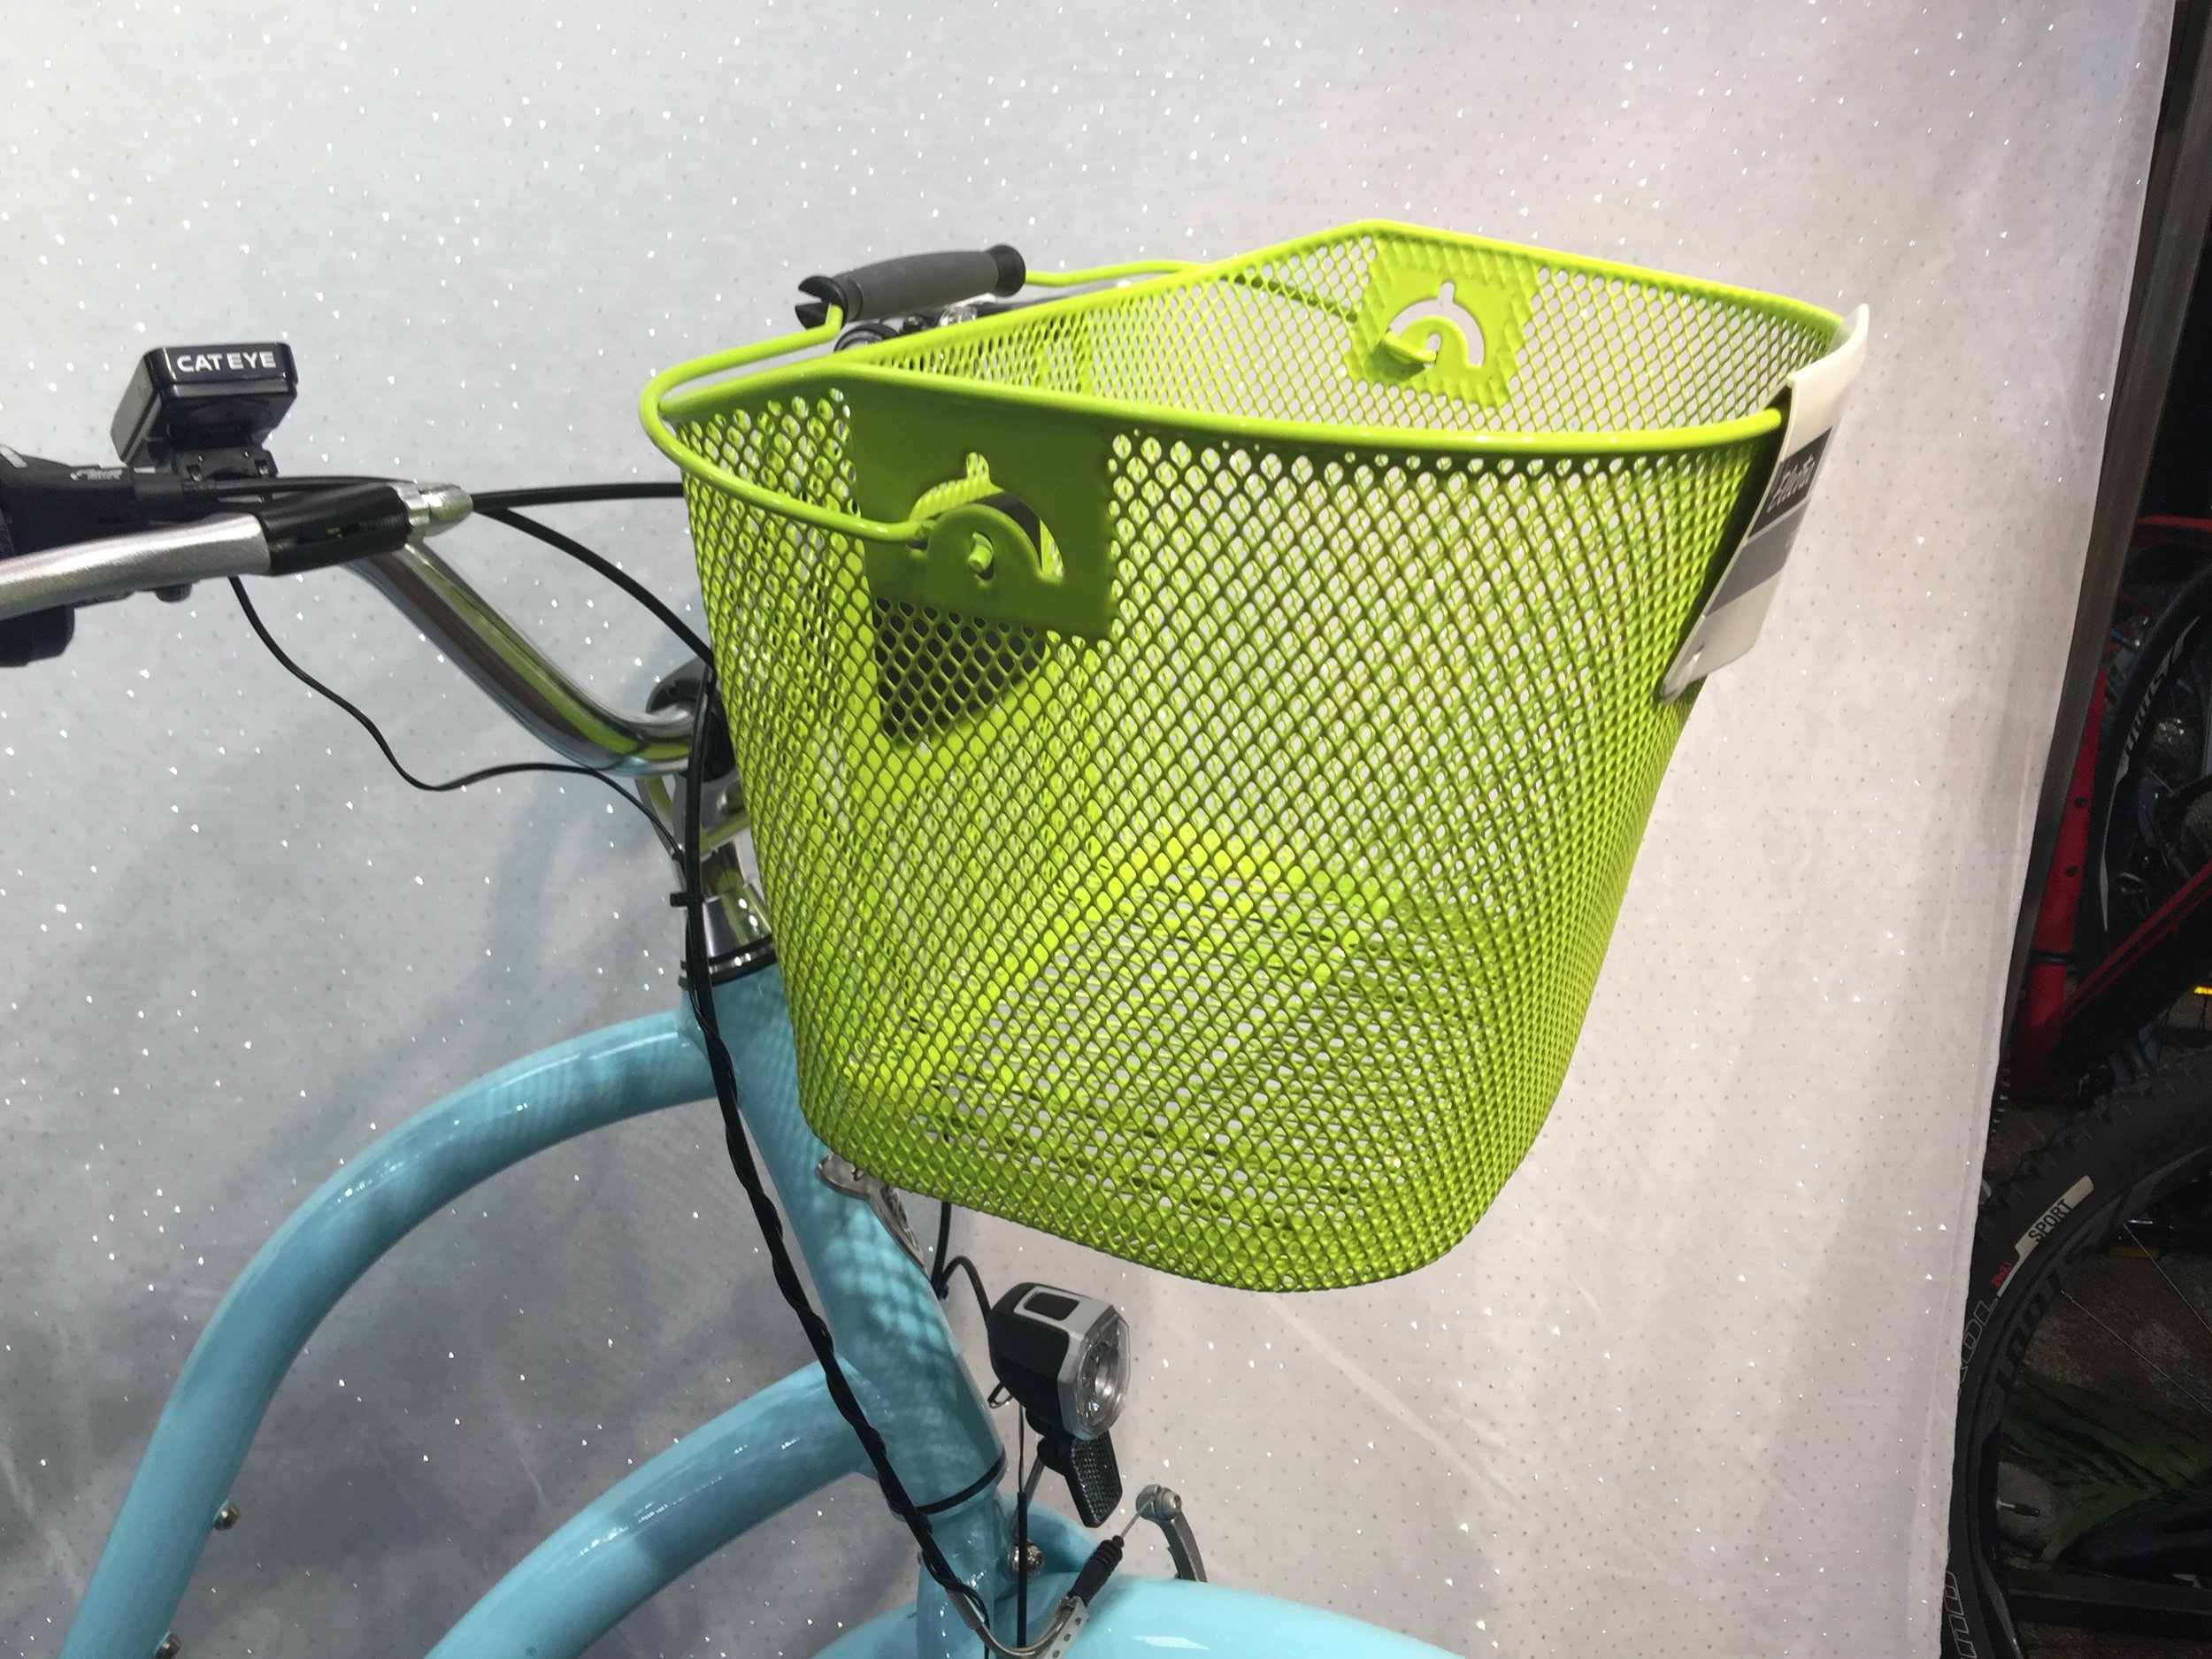 Front Baskets, Quick Release Mount, Convenient Handle, Open Mesh Design won't hold water